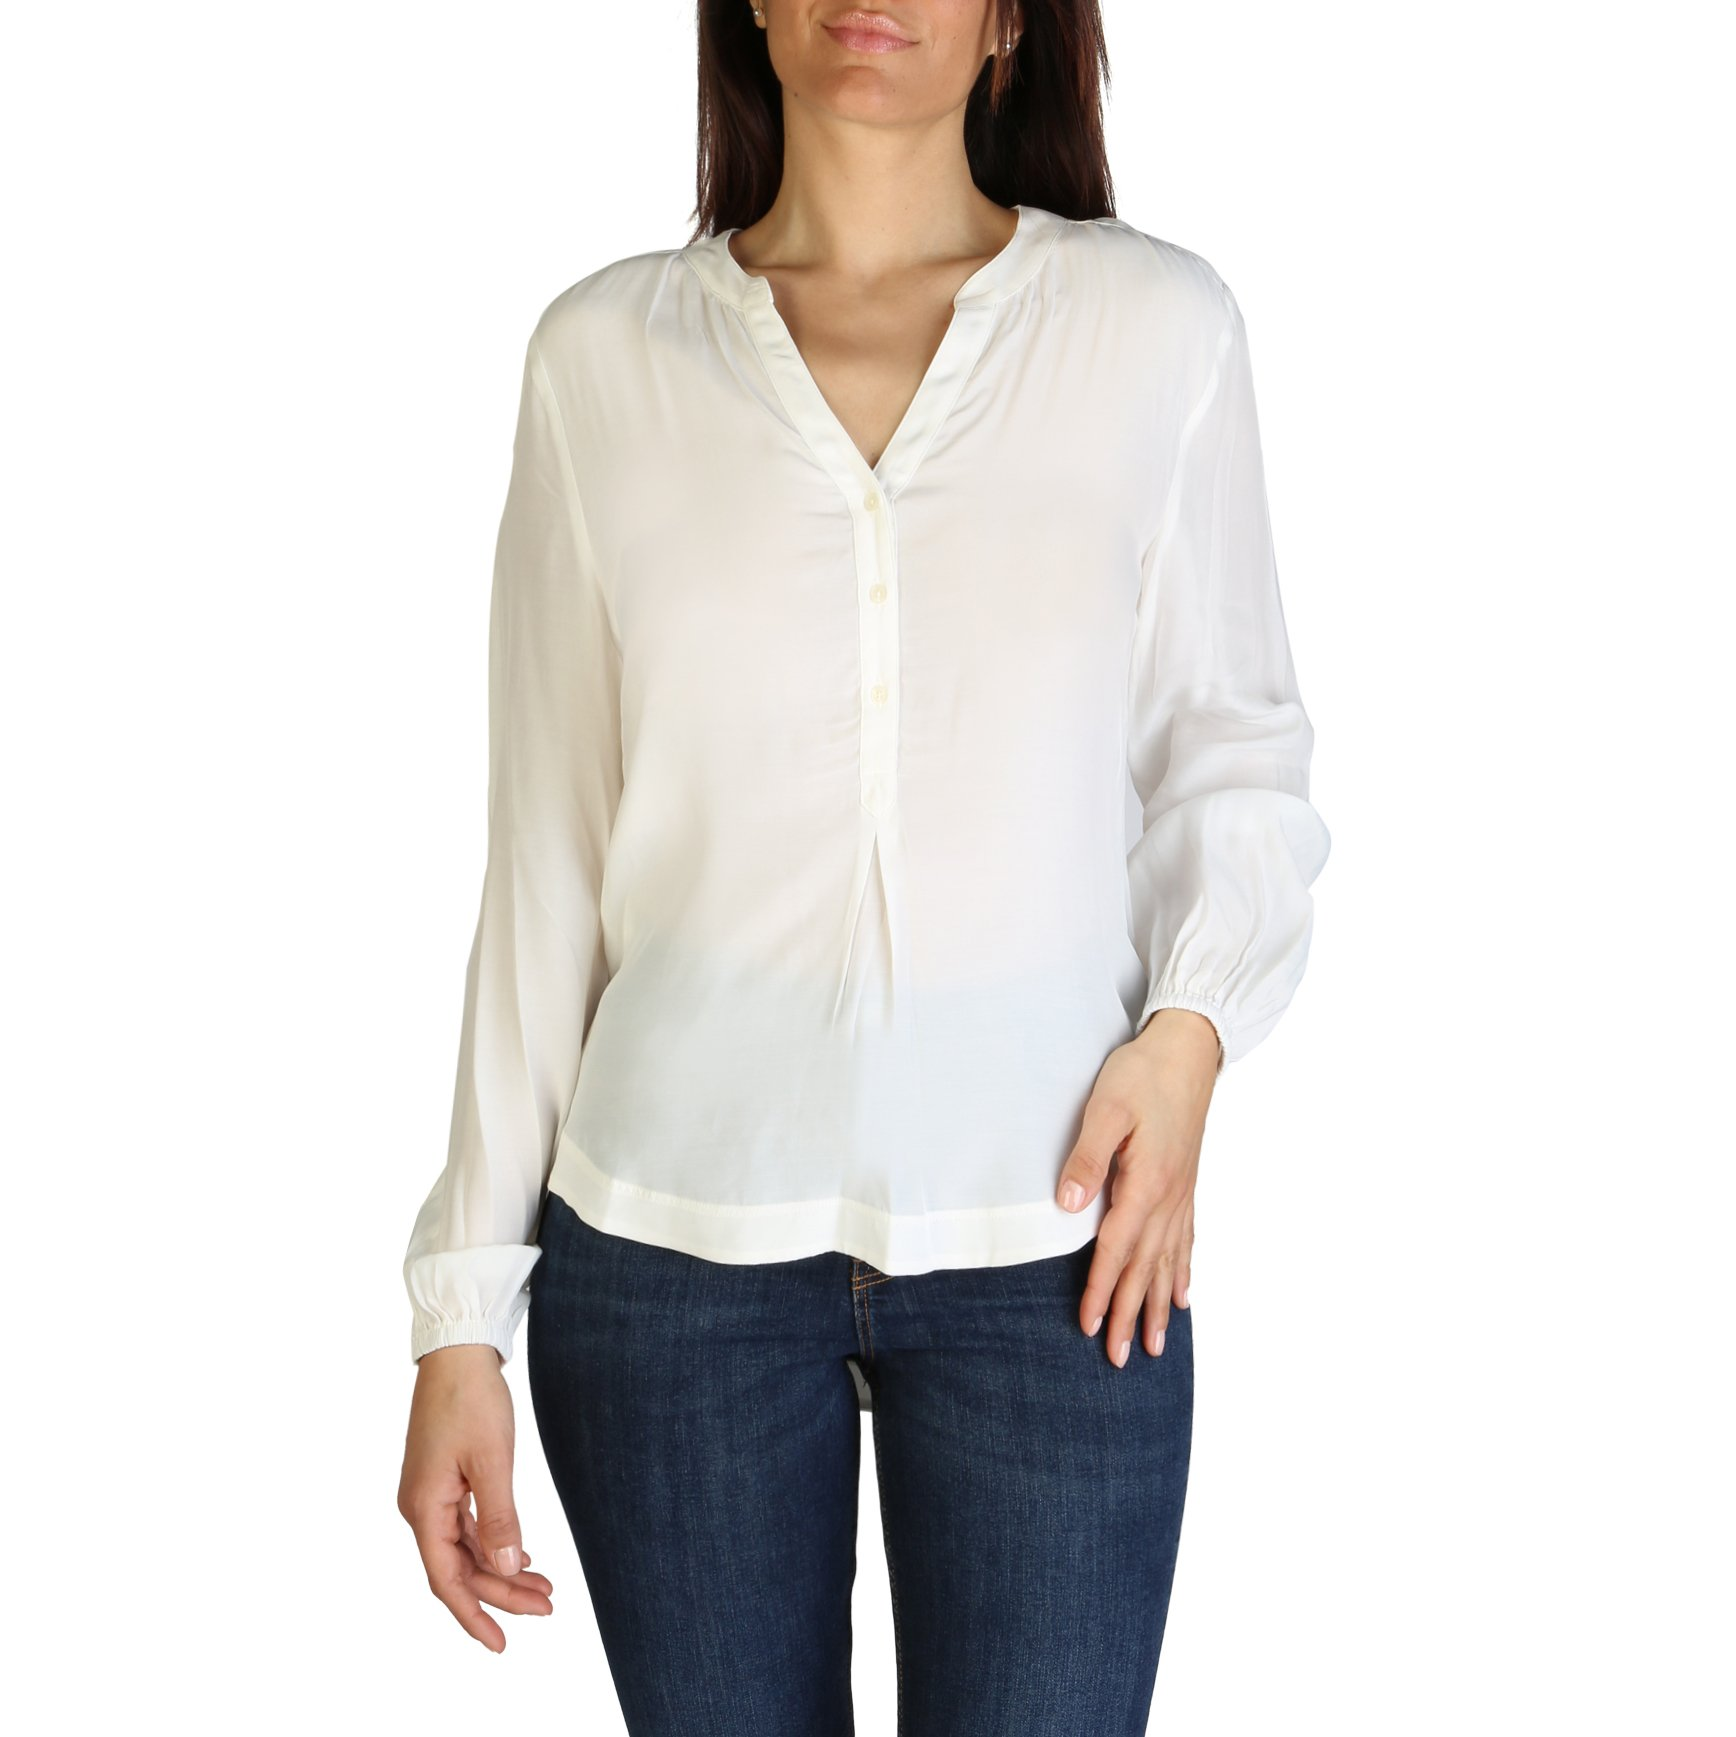 Tommy Hilfiger Women's Shirt Various Colours XW0XW01170 - white-1 12